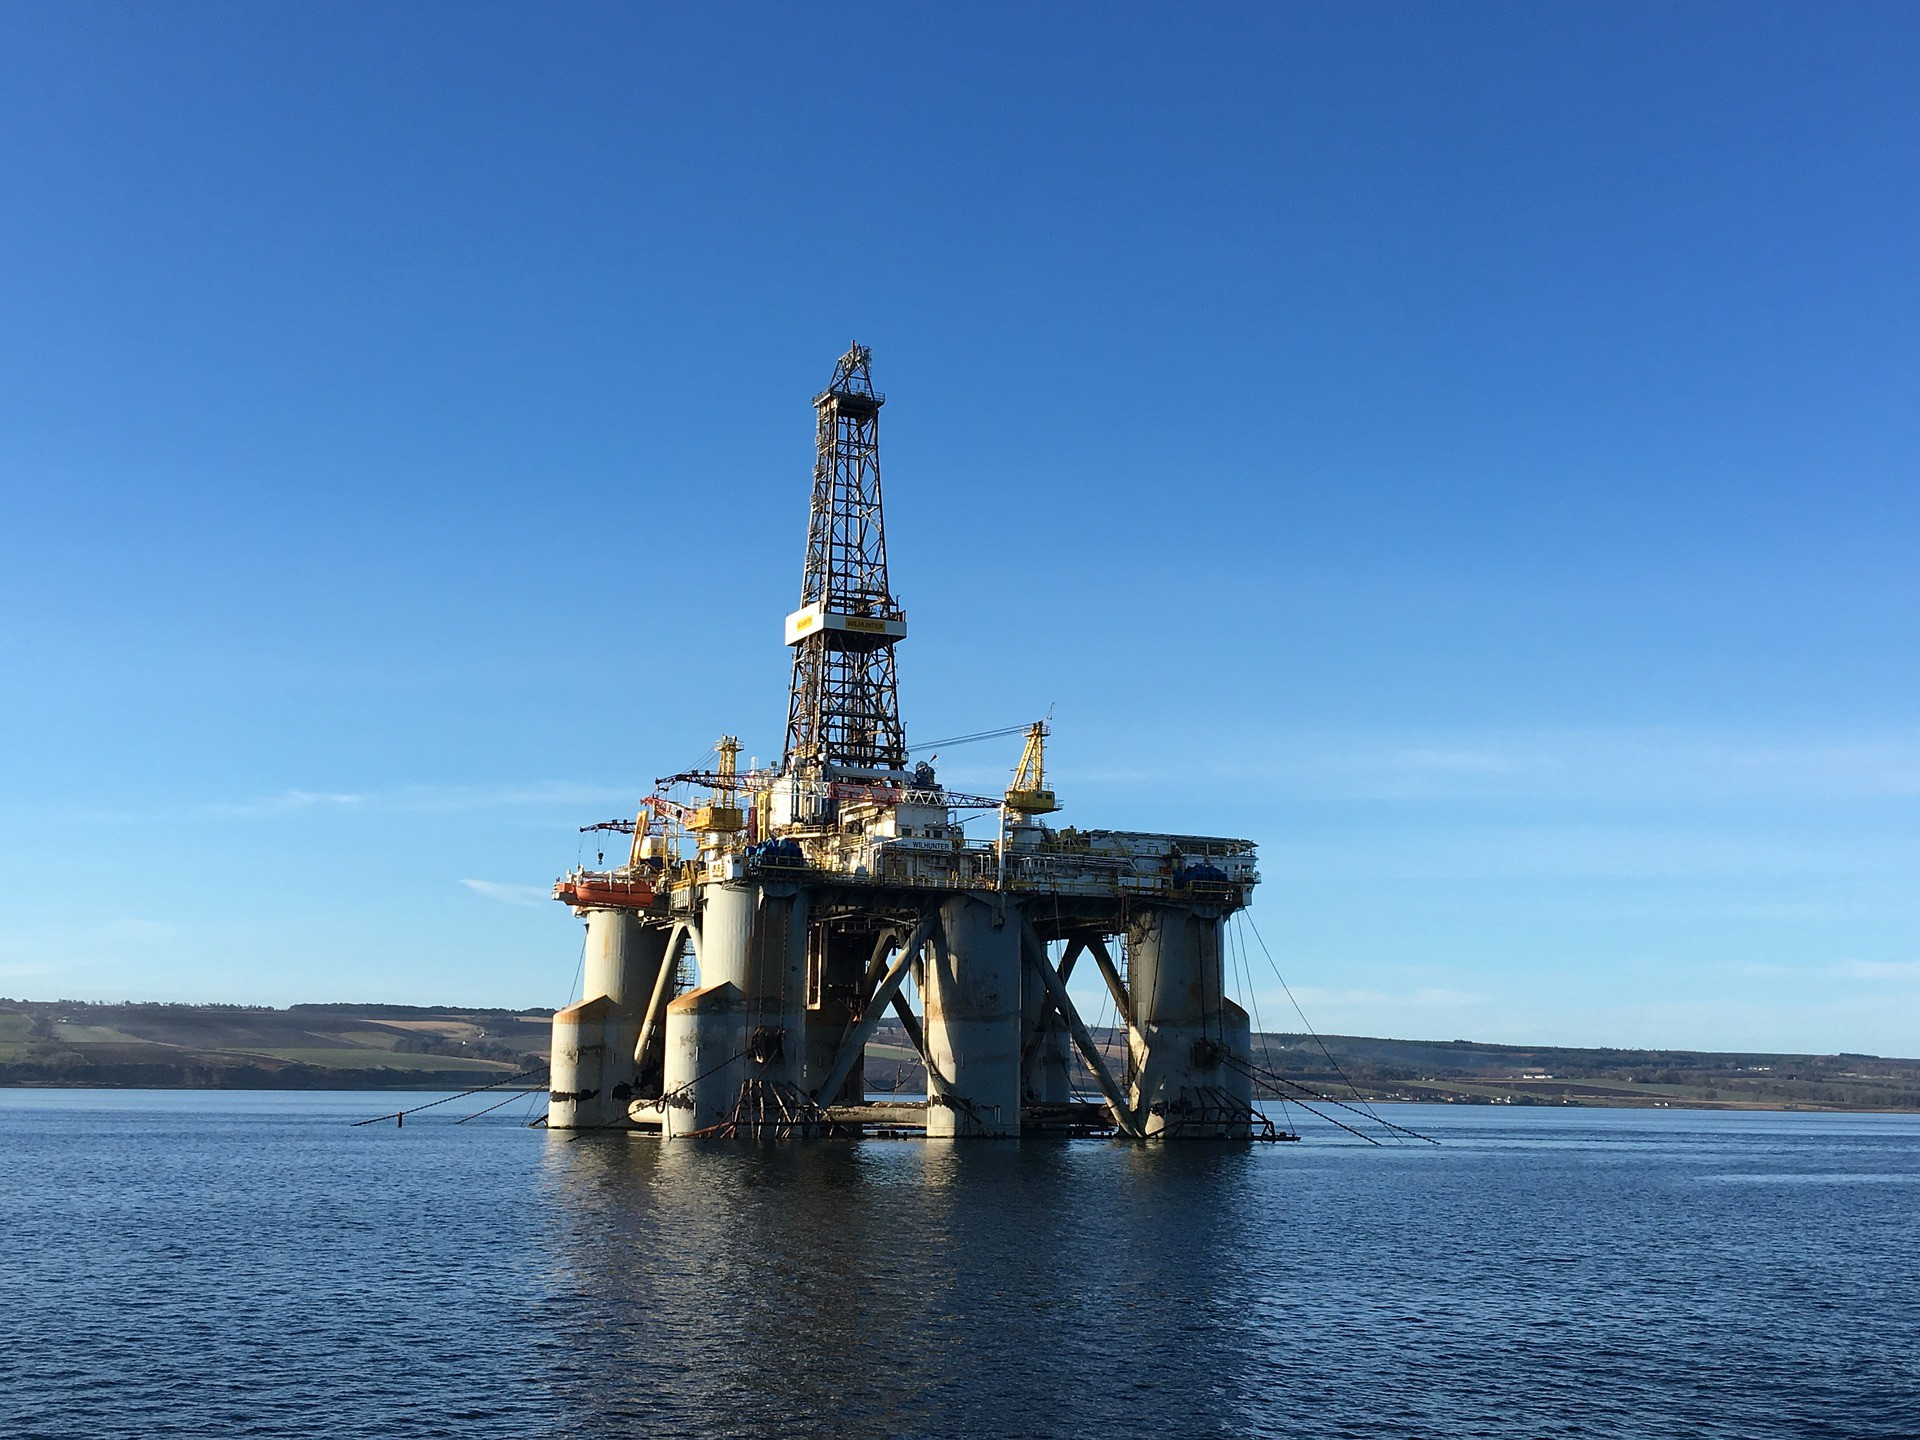 License to Drill: How Government and the Courts Are Misapplying the Law to Protect the Fossil Fuel Industry